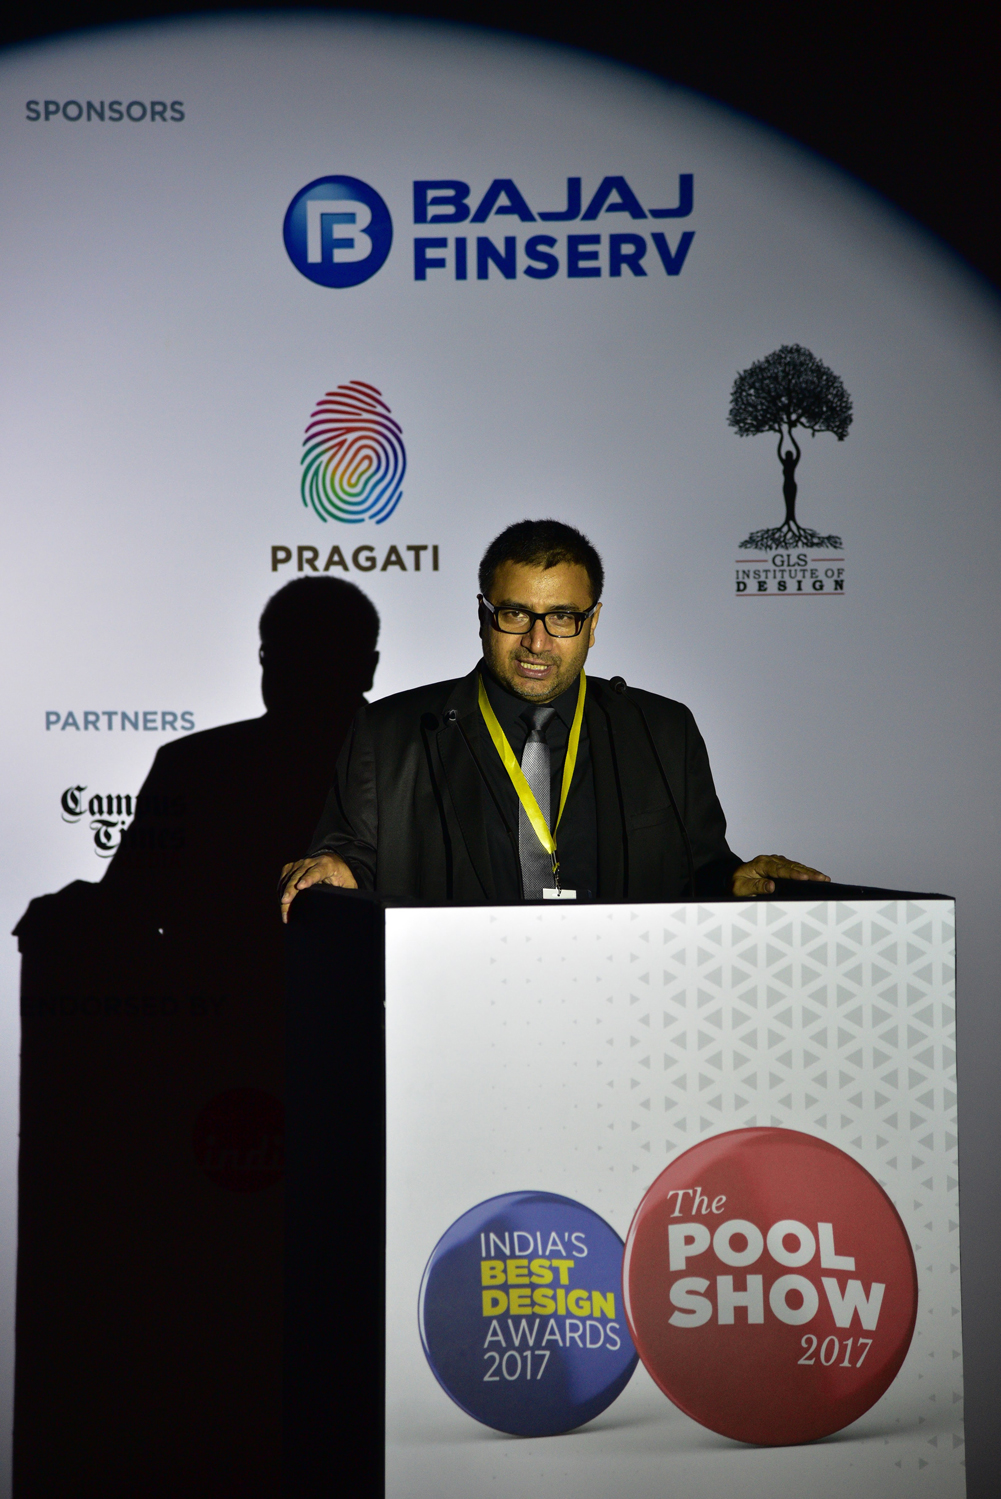 Sudhir Sharma, Editor-in-chief of the POOL Magazine, introducing the event, The POOL Show 2017.